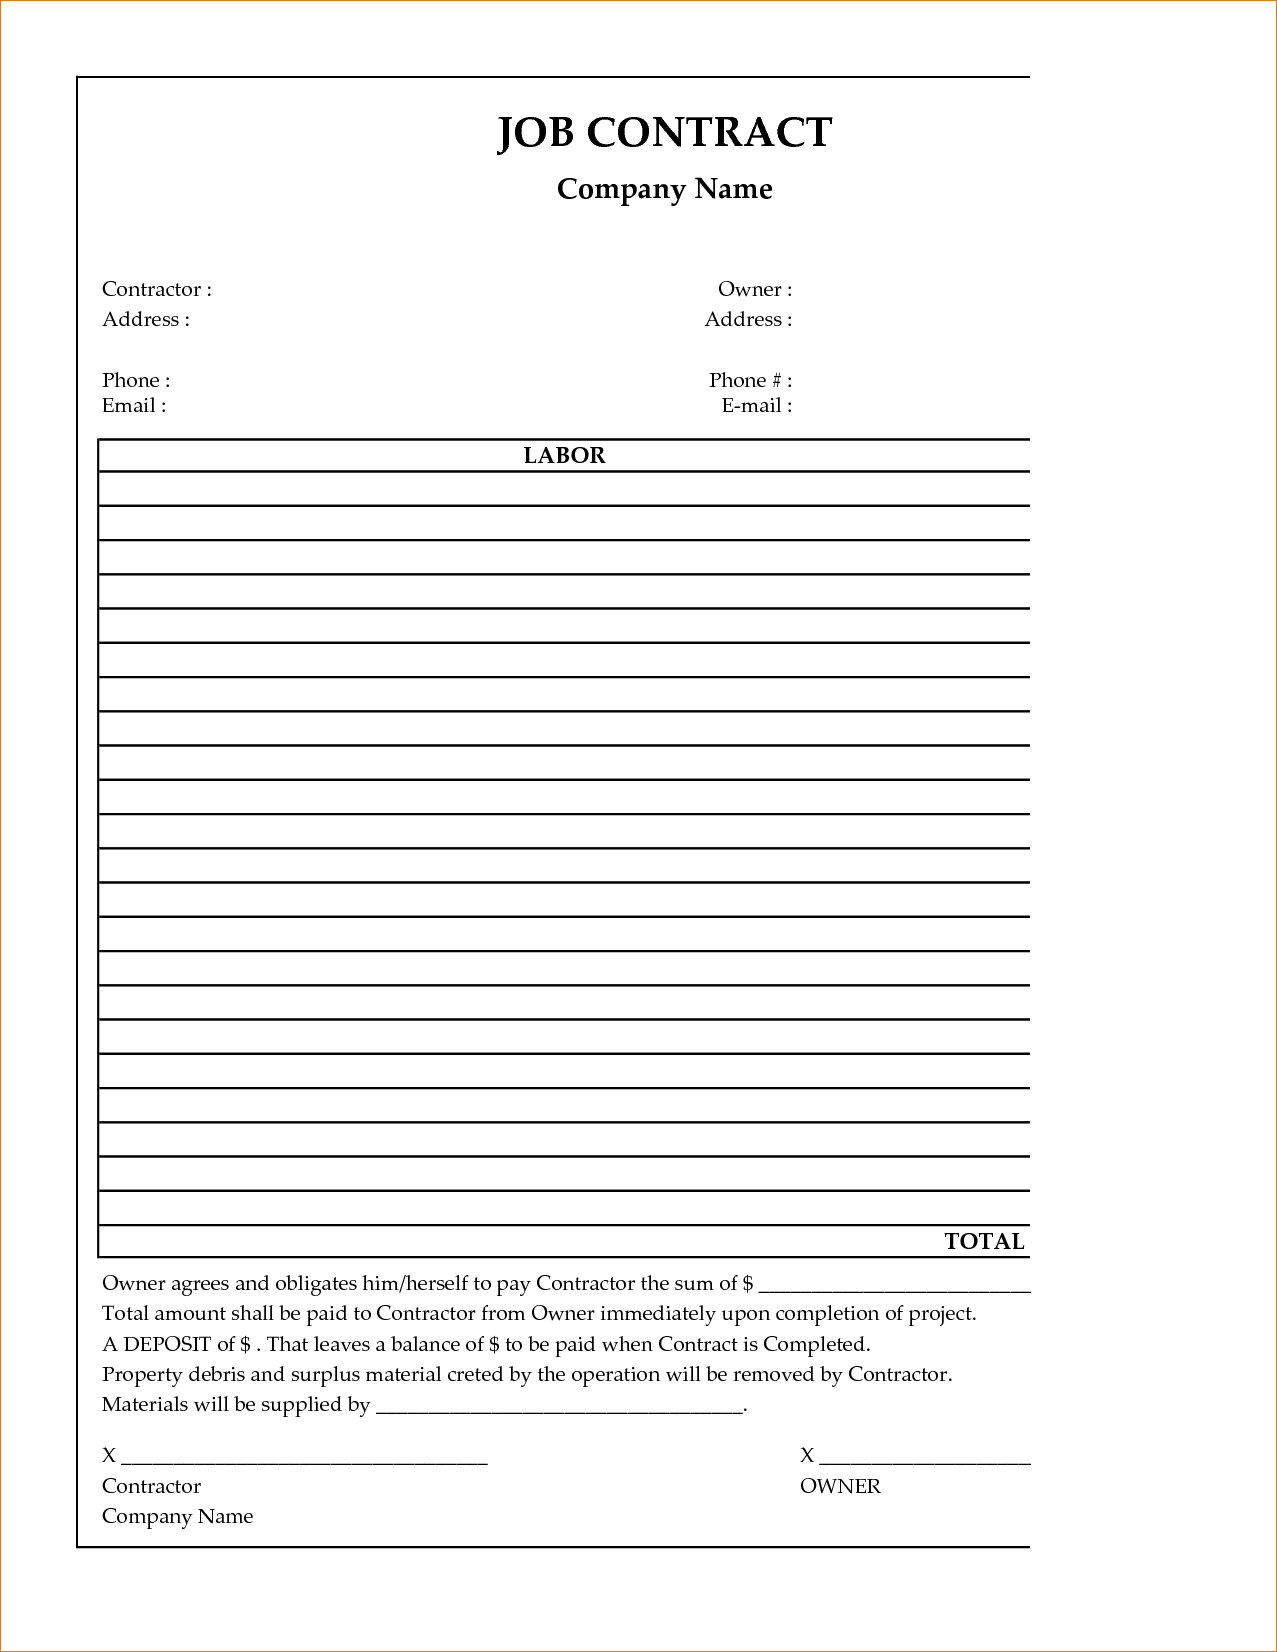 Template: Free Printable Construction Contract Template - Free Printable Construction Contracts